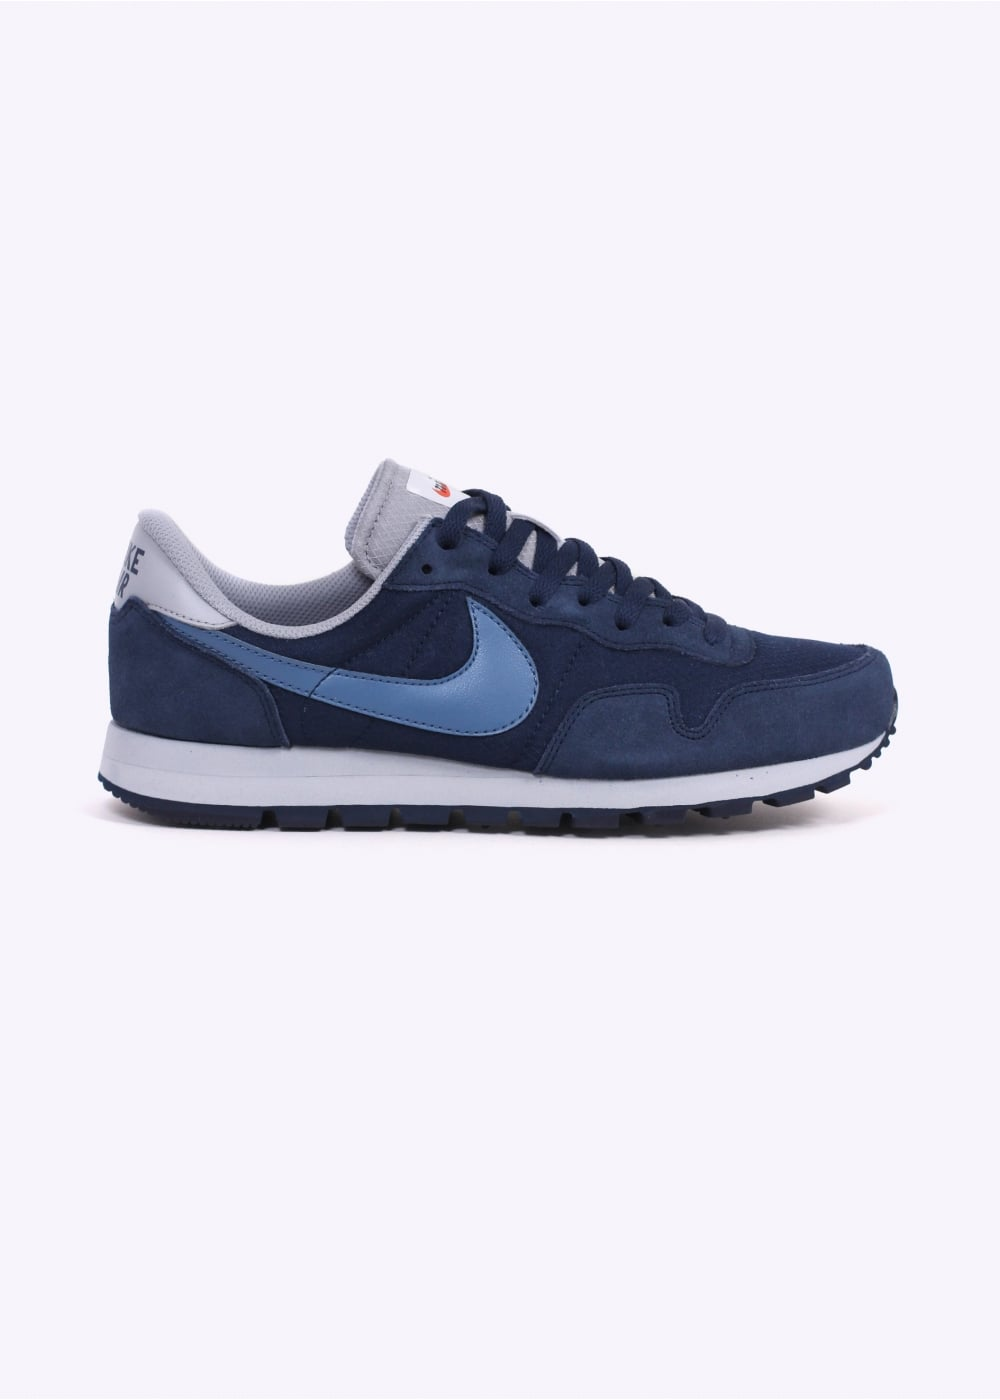 Fruta vegetales Temblar Desventaja  Nike Footwear Air Pegasus 83 - Midnight Navy / Ocean Fog - Triads Mens from  Triads UK